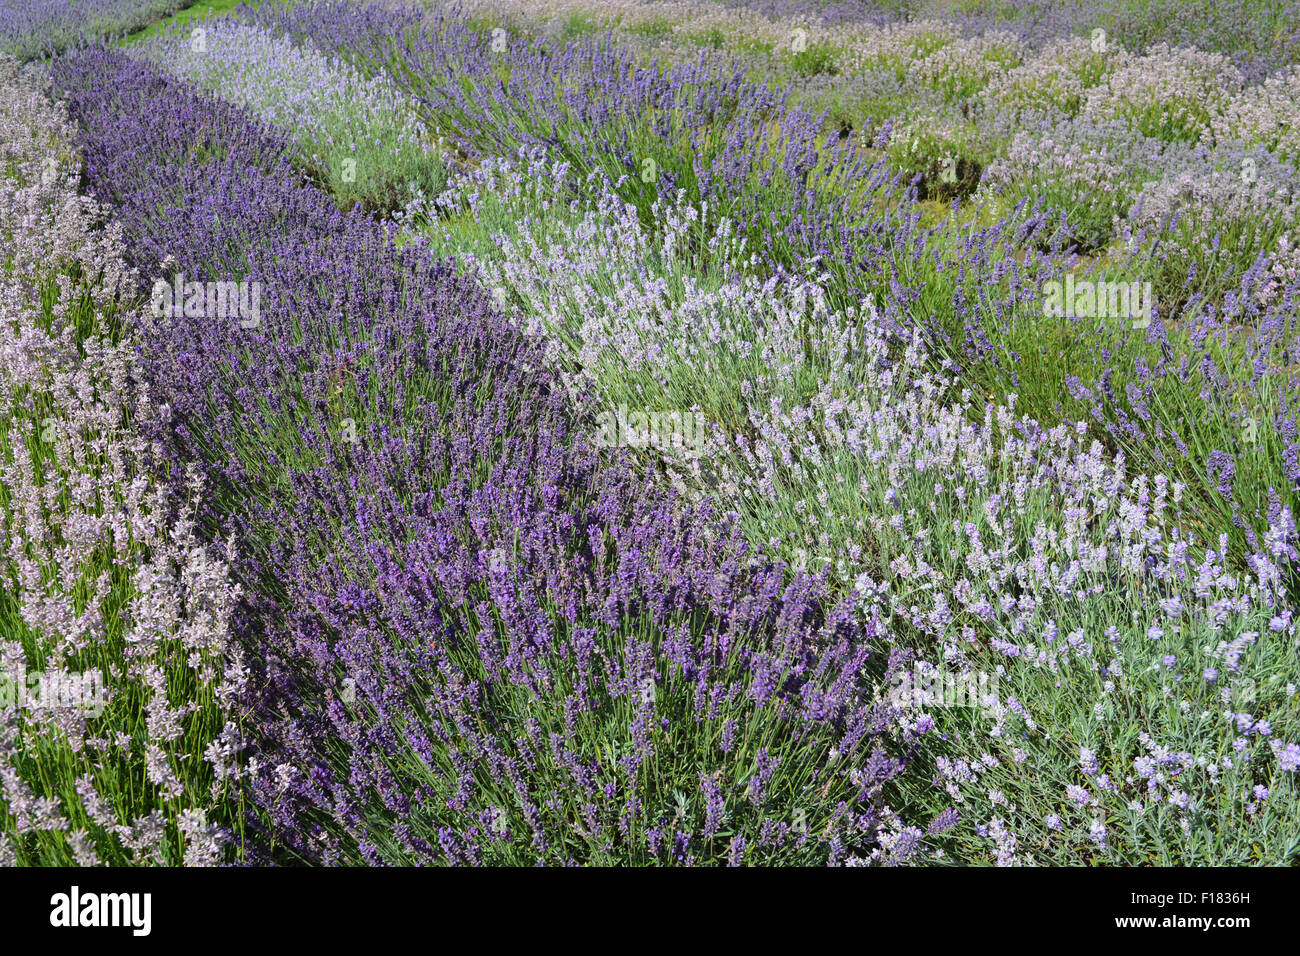 """Yorkshire Lavender Farm. Rows of lavender (Lavandula angustifolia), including """"Rosea"""", """"Imperial Gem"""" and """"Blue Stock Photo"""